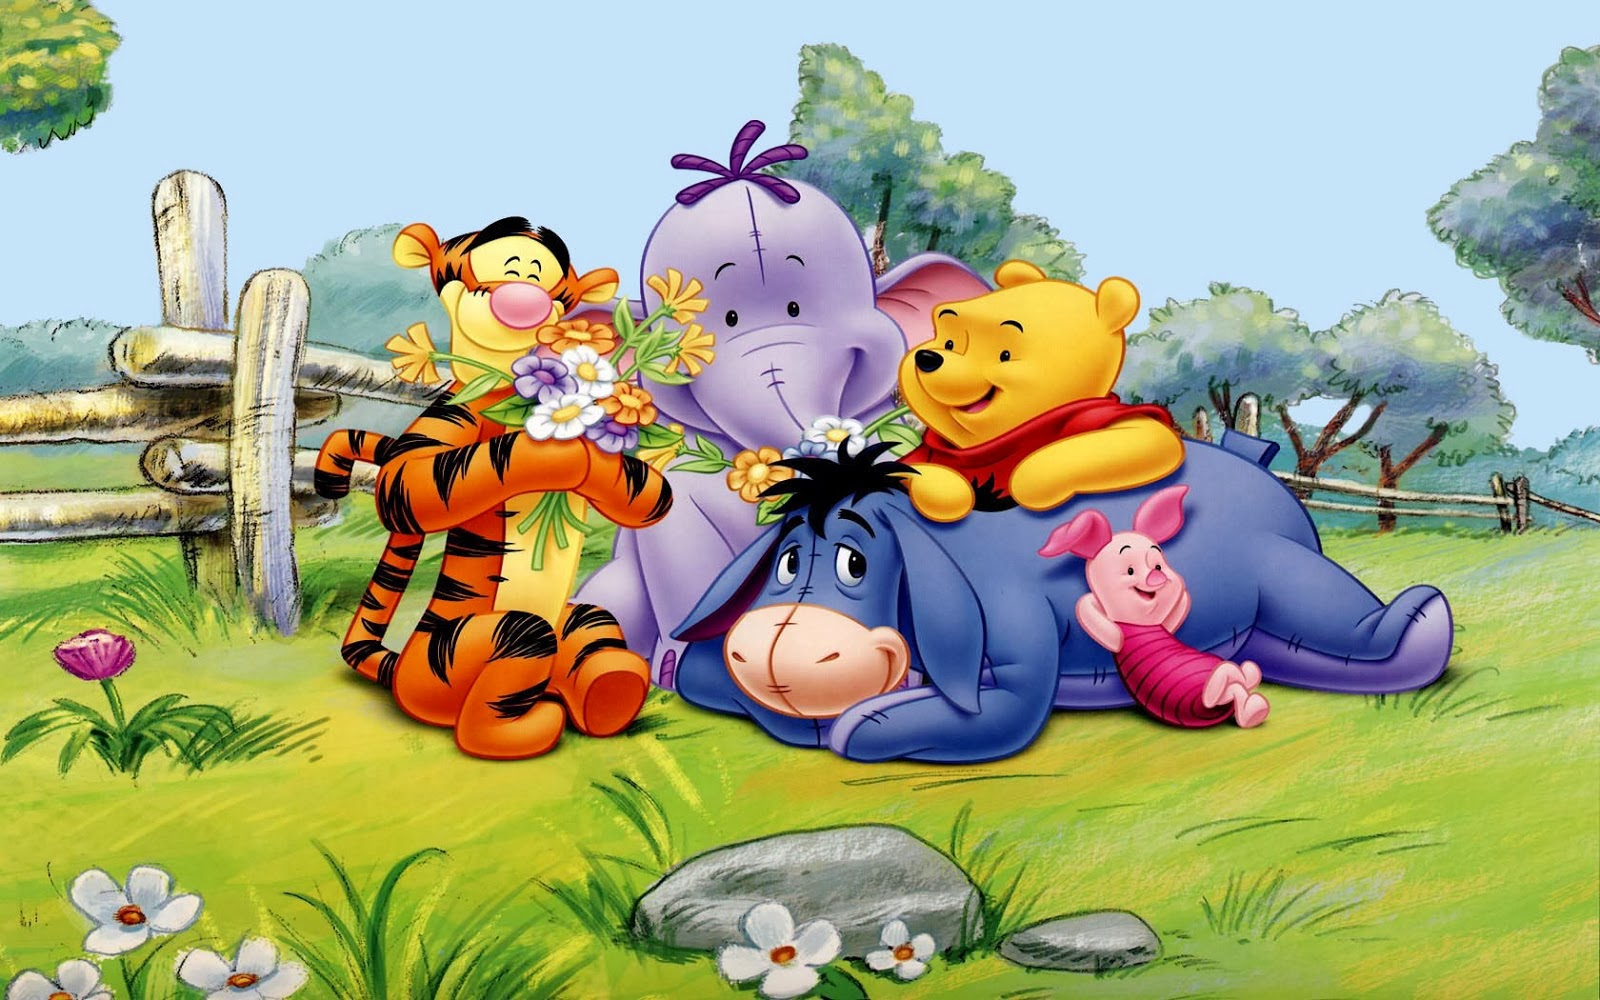 This is a picture of Old Fashioned Winnie the Pooh Pics